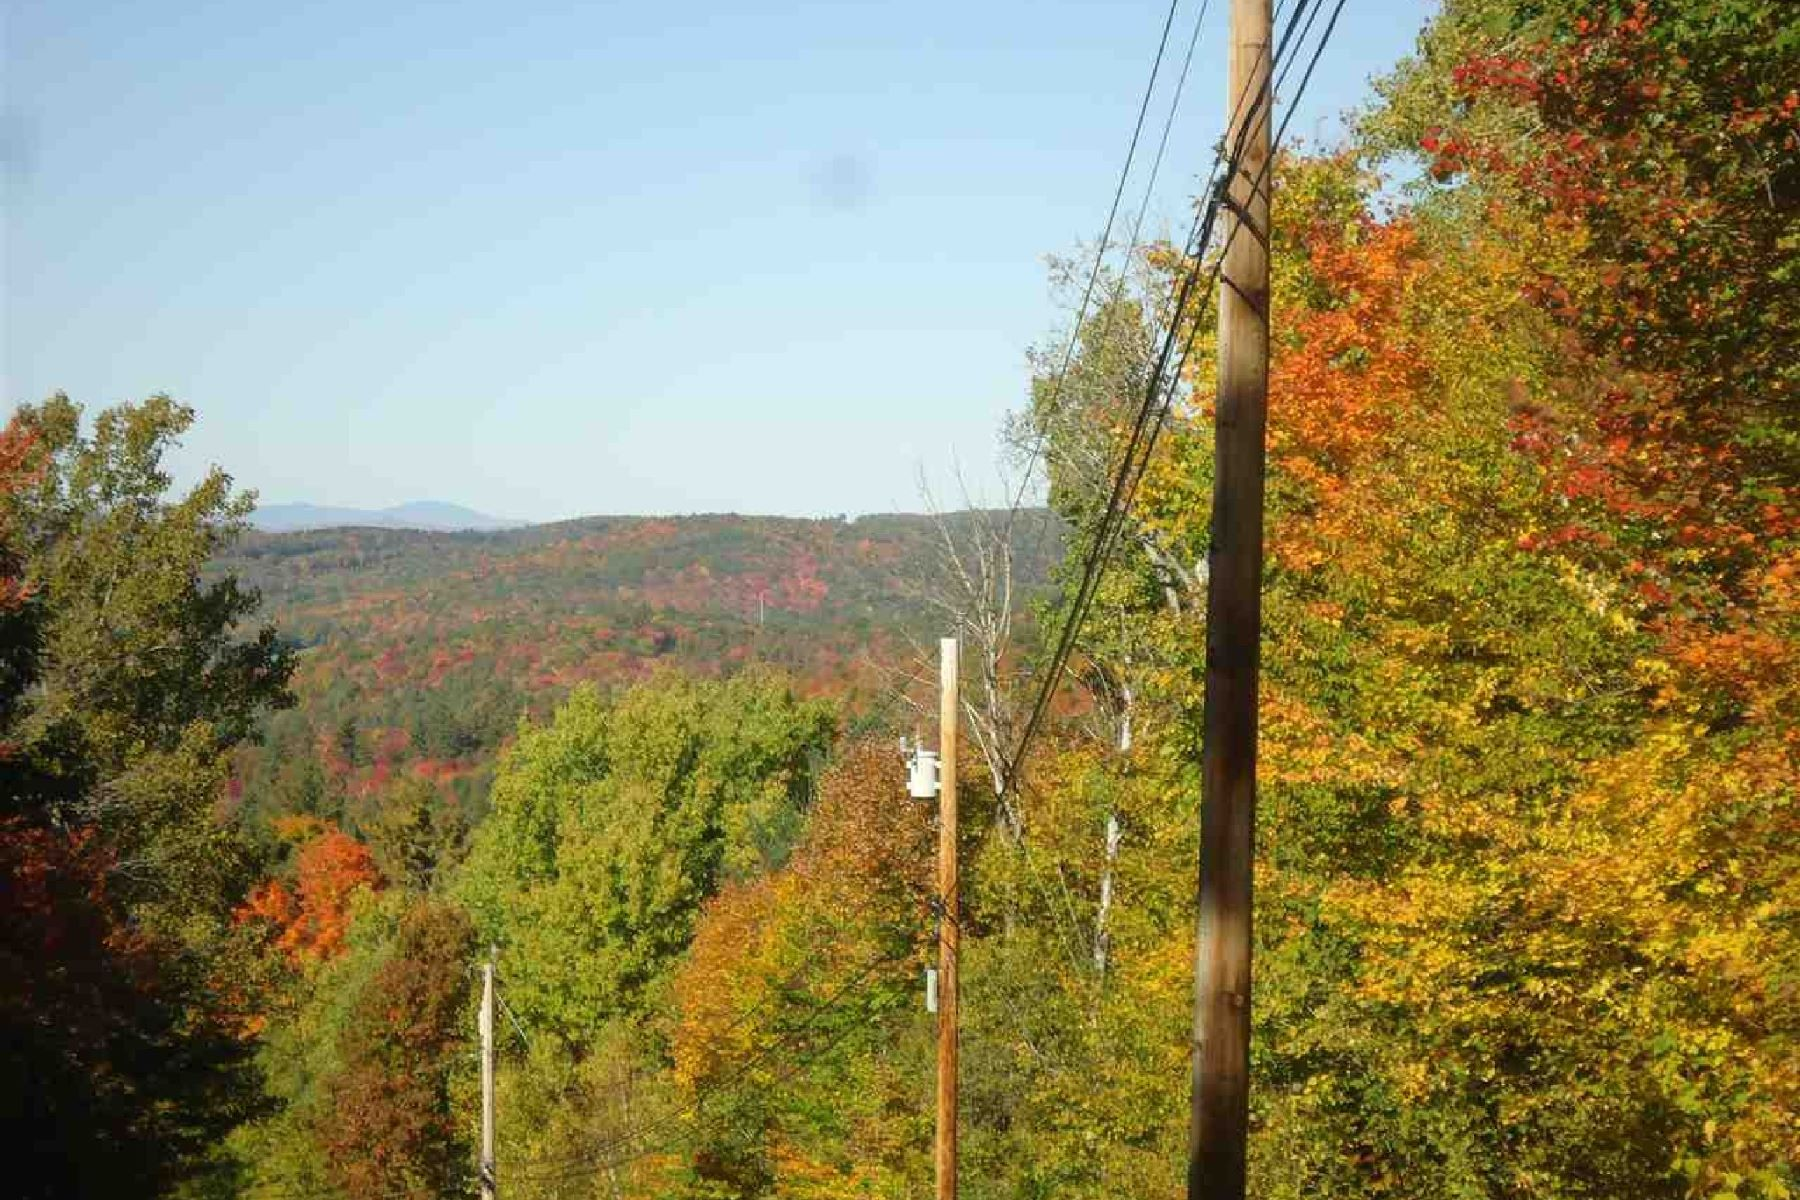 Land for Sale at 644B Methodist Hill Road, Enfield 644B Methodist Hill Rd Enfield, New Hampshire 03748 United States